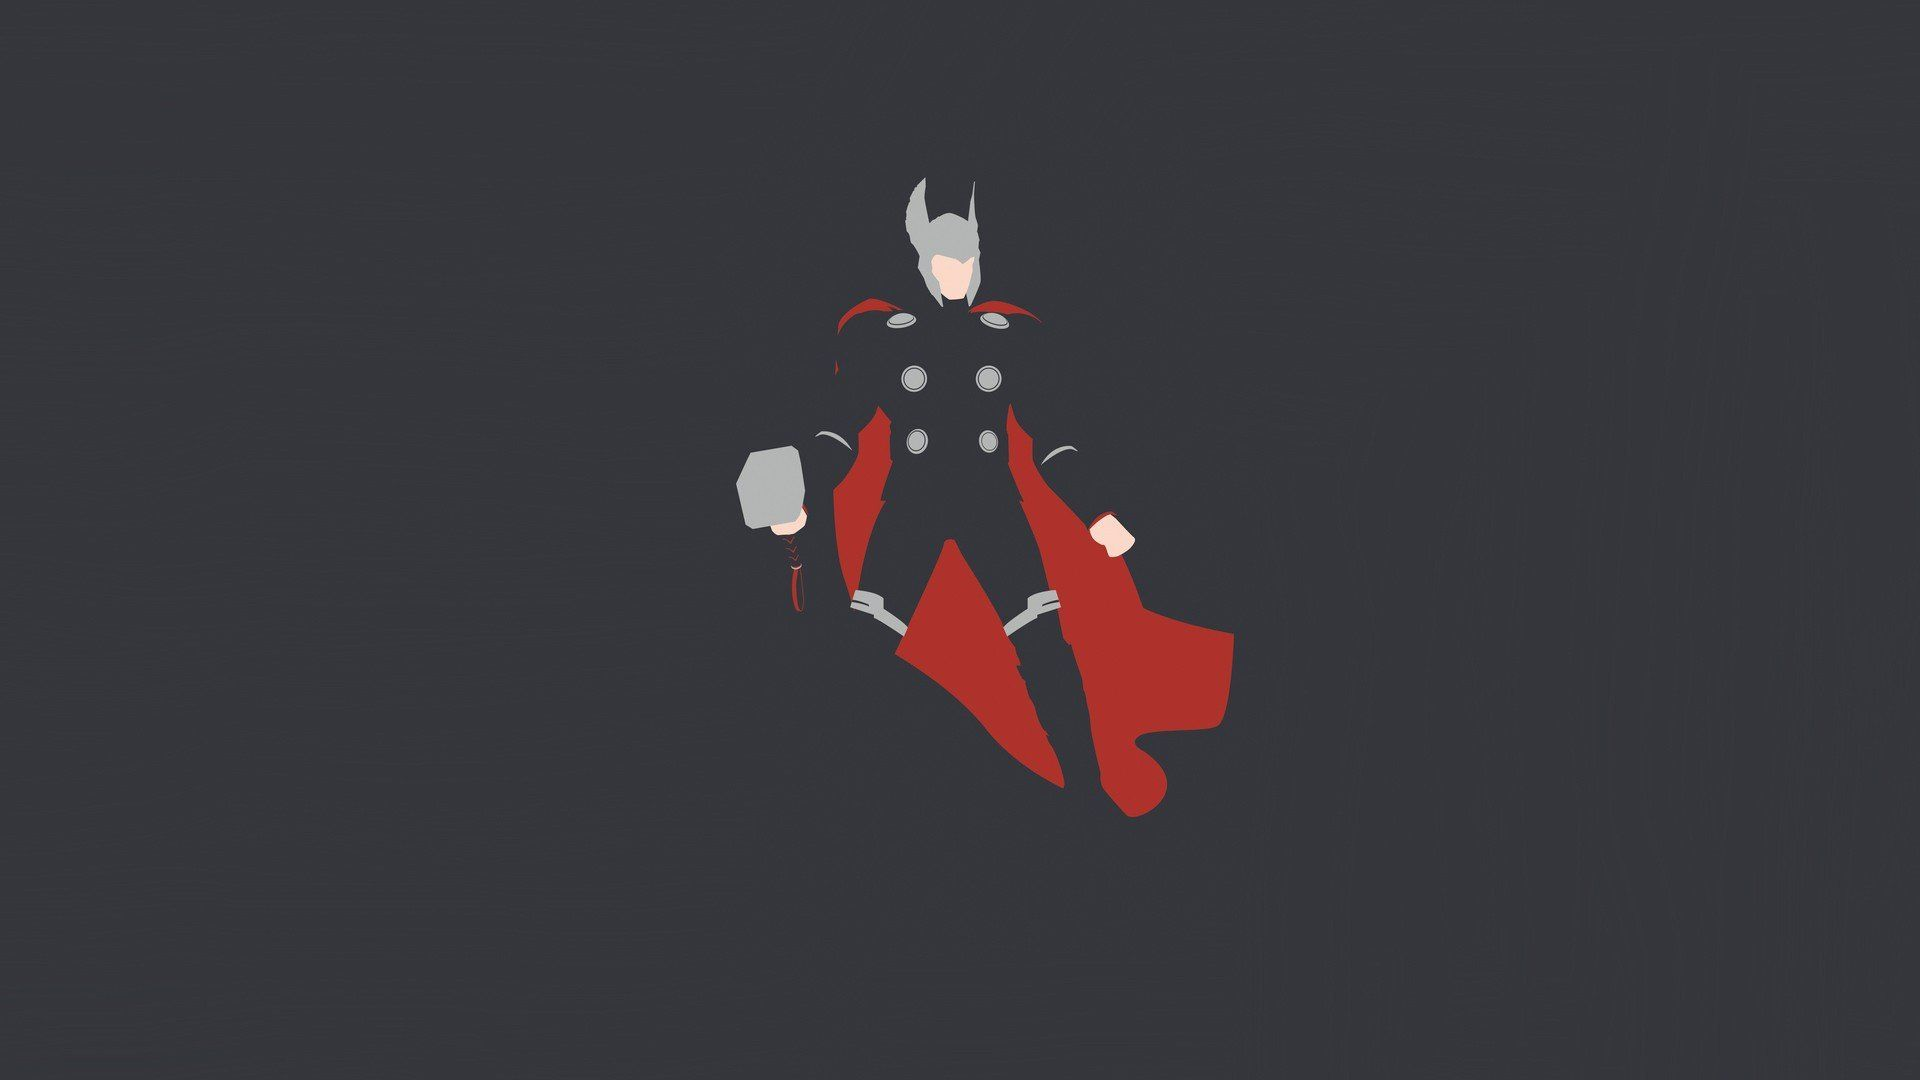 Thor Minimalist Wallpapers Top Free Thor Minimalist Backgrounds Wallpaperaccess